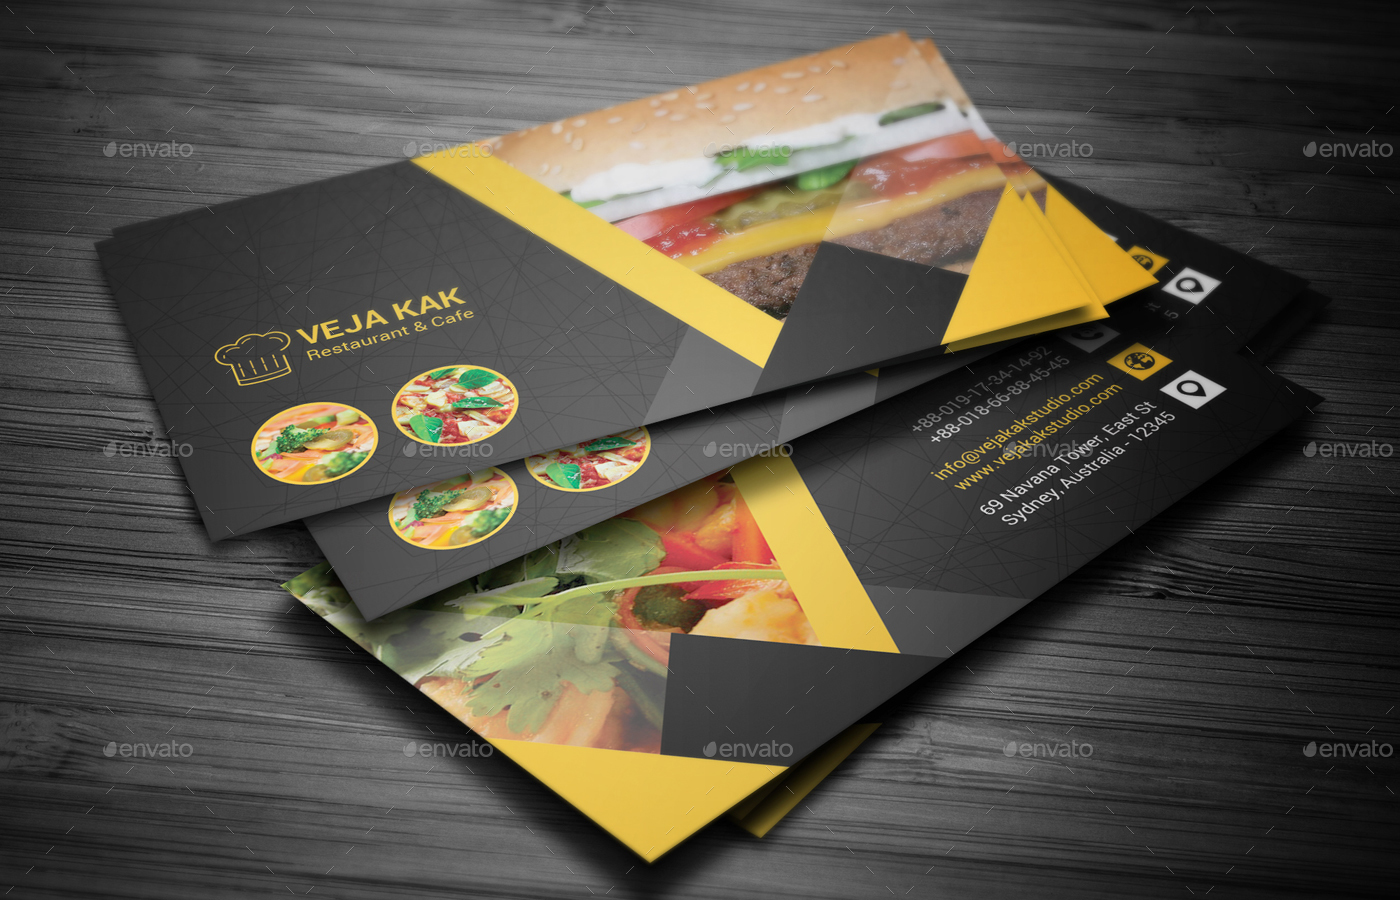 Restaurant business cards templates free mandegarfo restaurant business cards templates free wajeb Choice Image